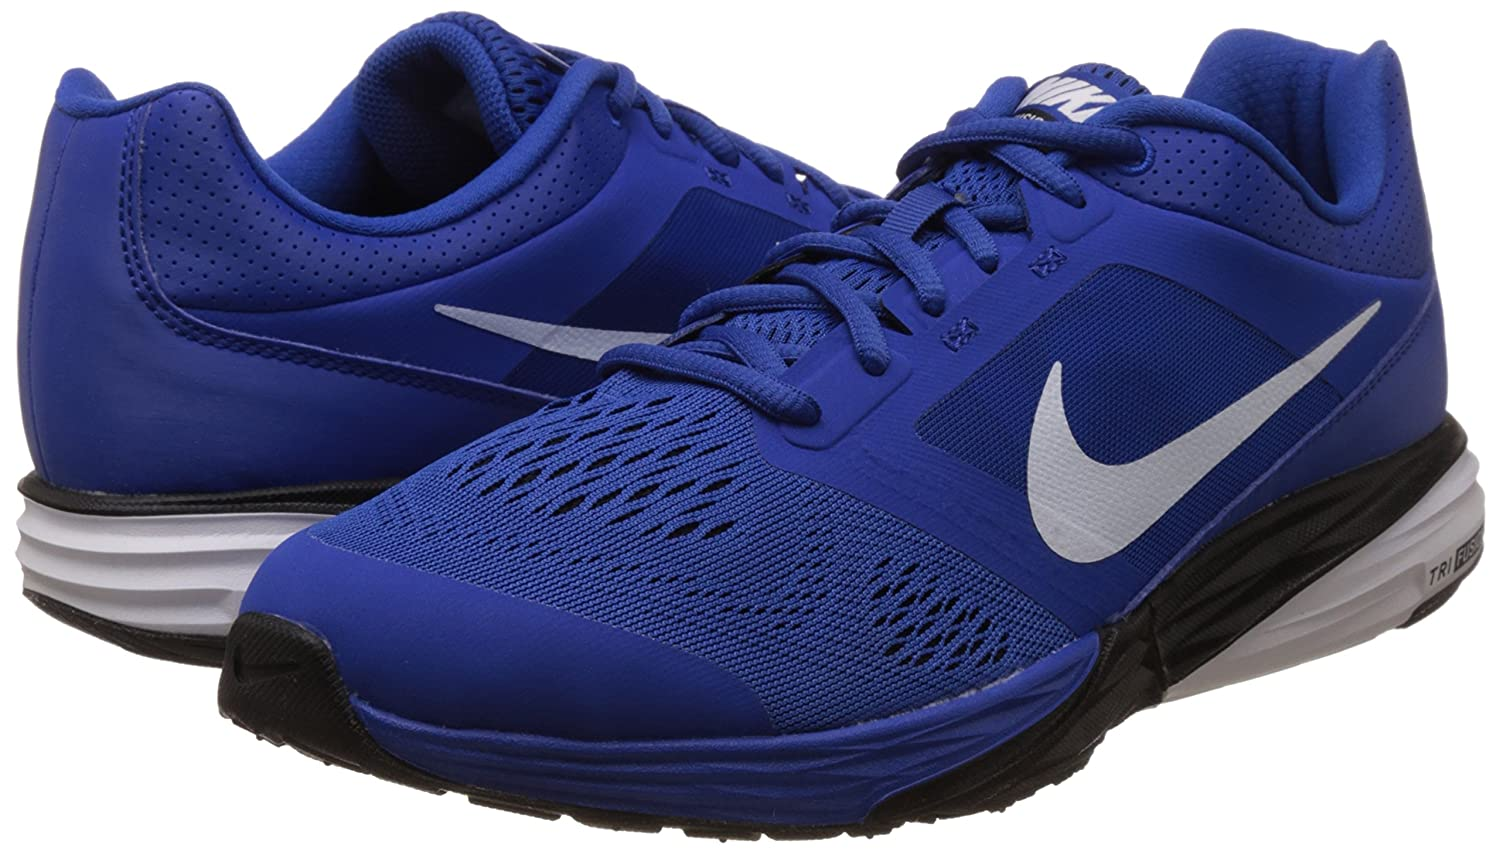 968de3a01459 ... release date nike mens tri fusion run msl game royal white and  blackrunning shoes 11 uk